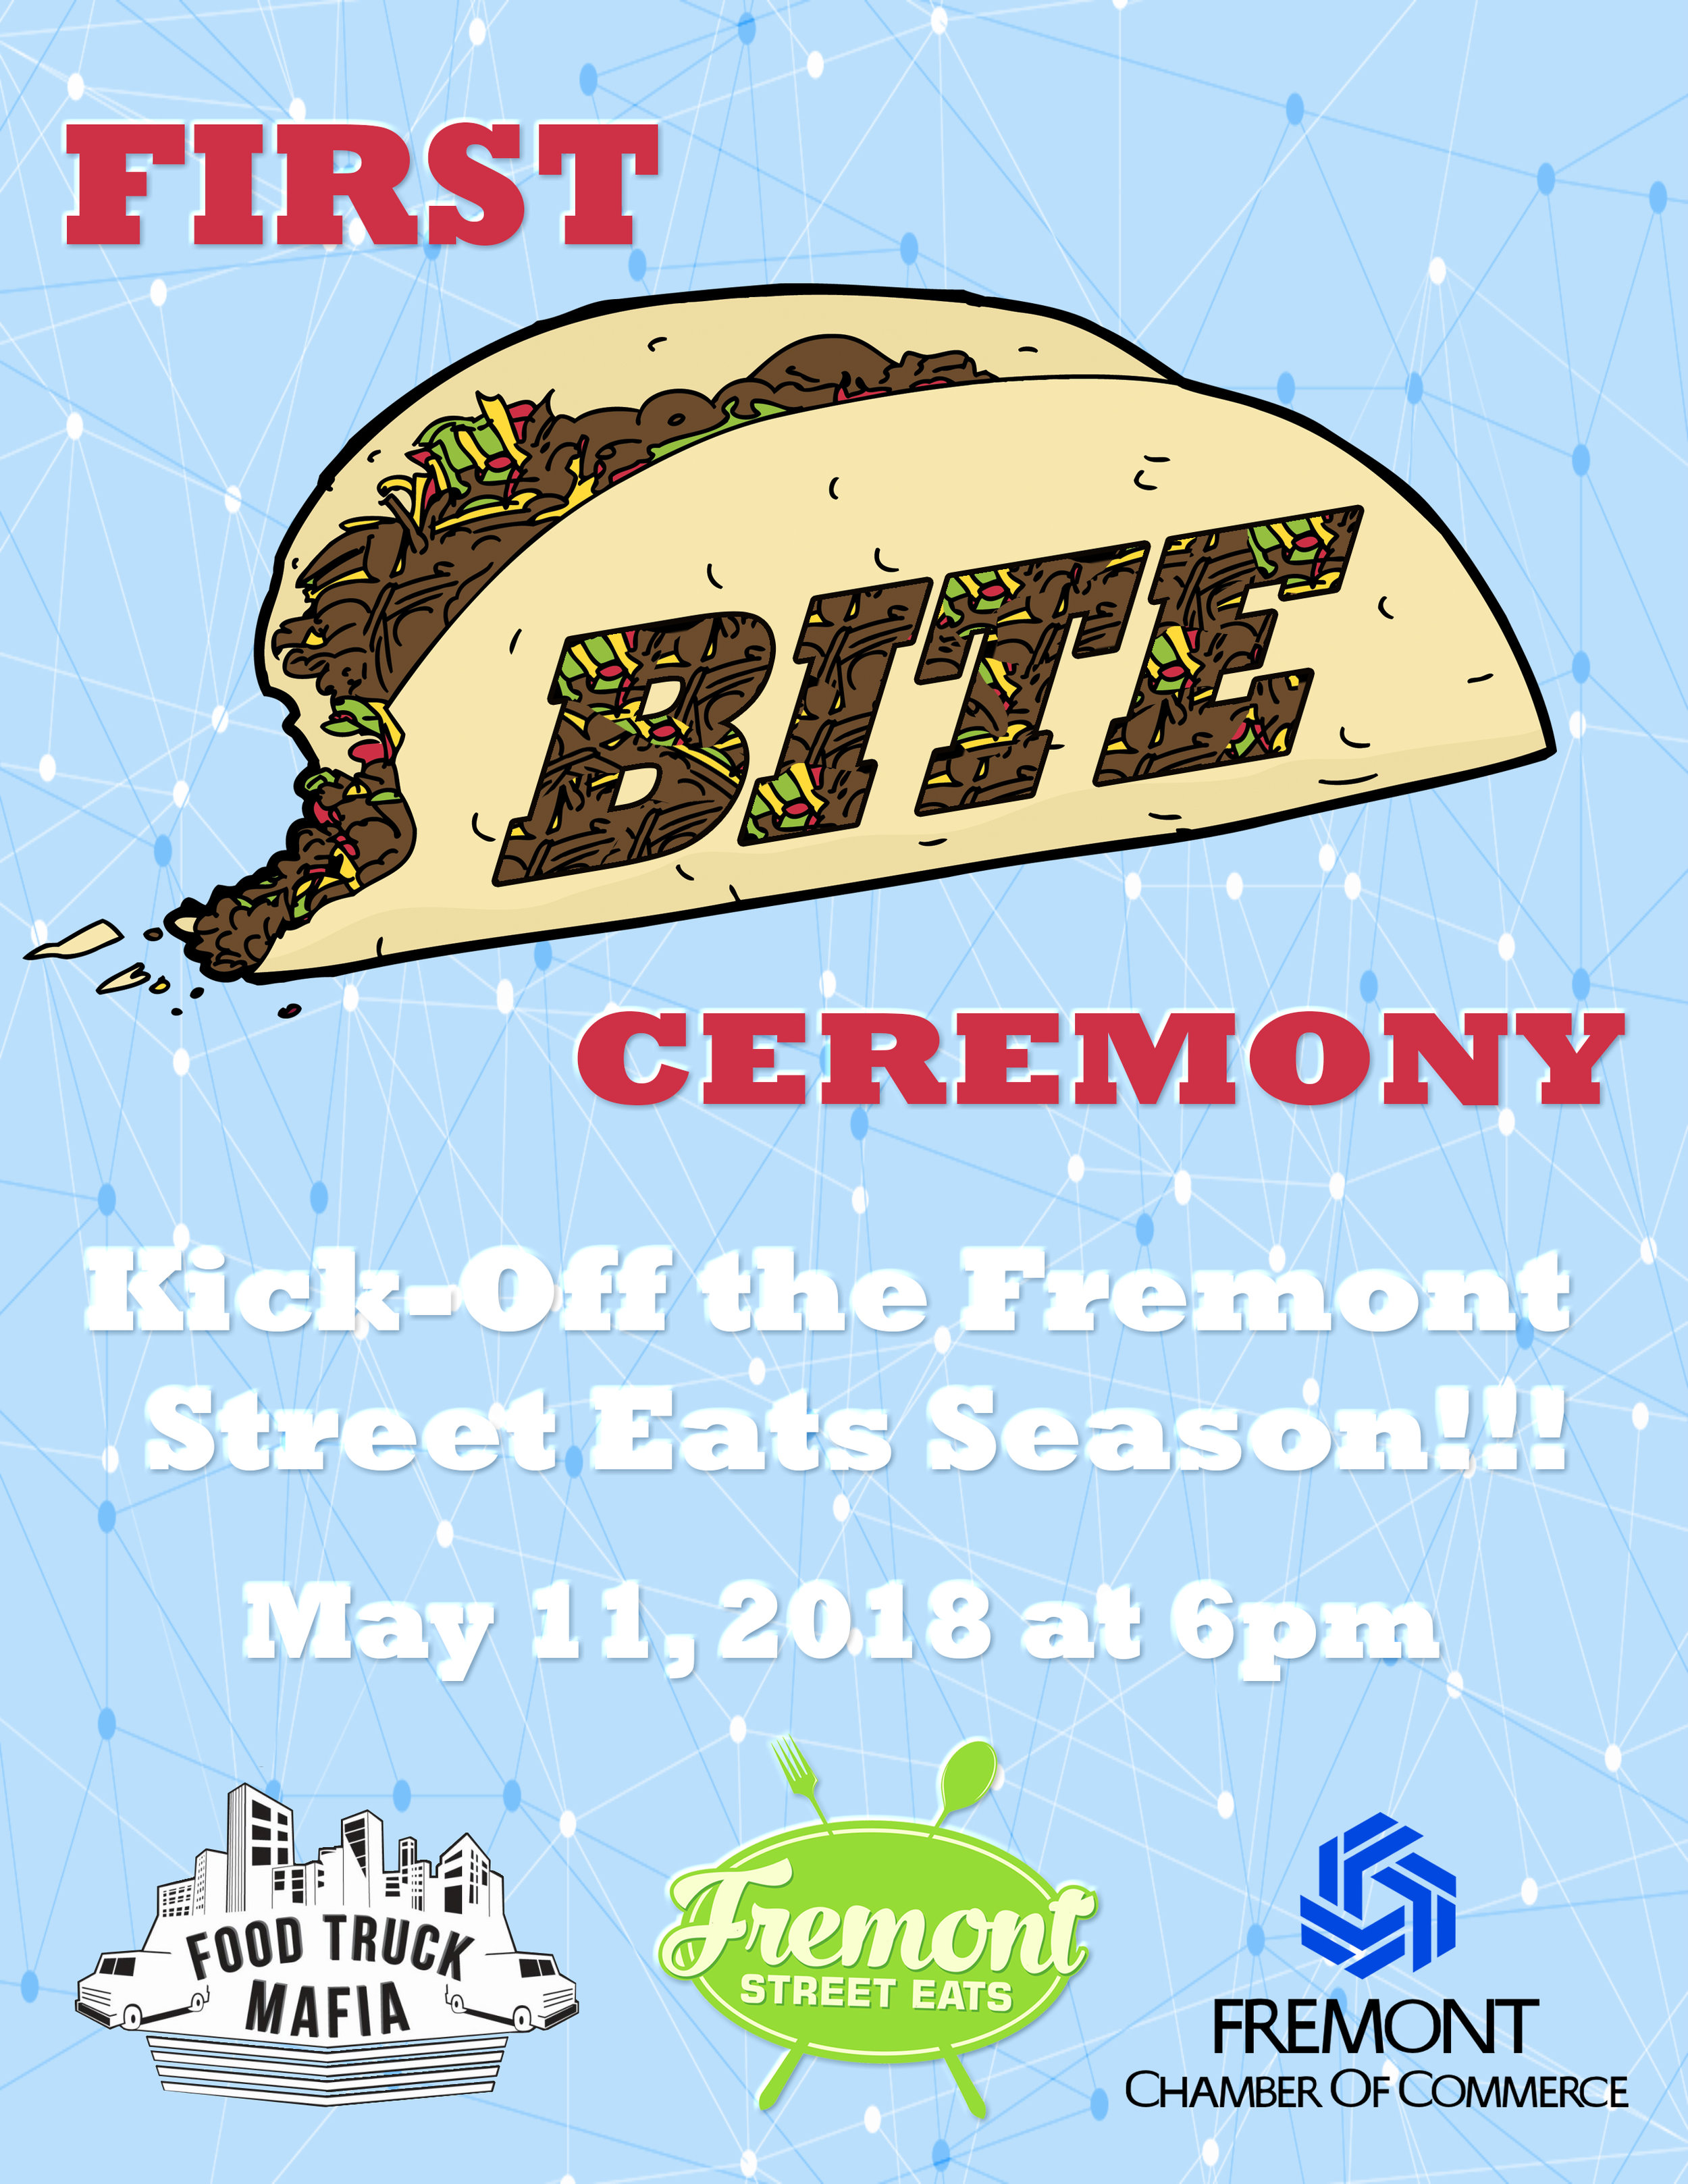 2018FSE_First Bite Ceremony_Poster.jpg